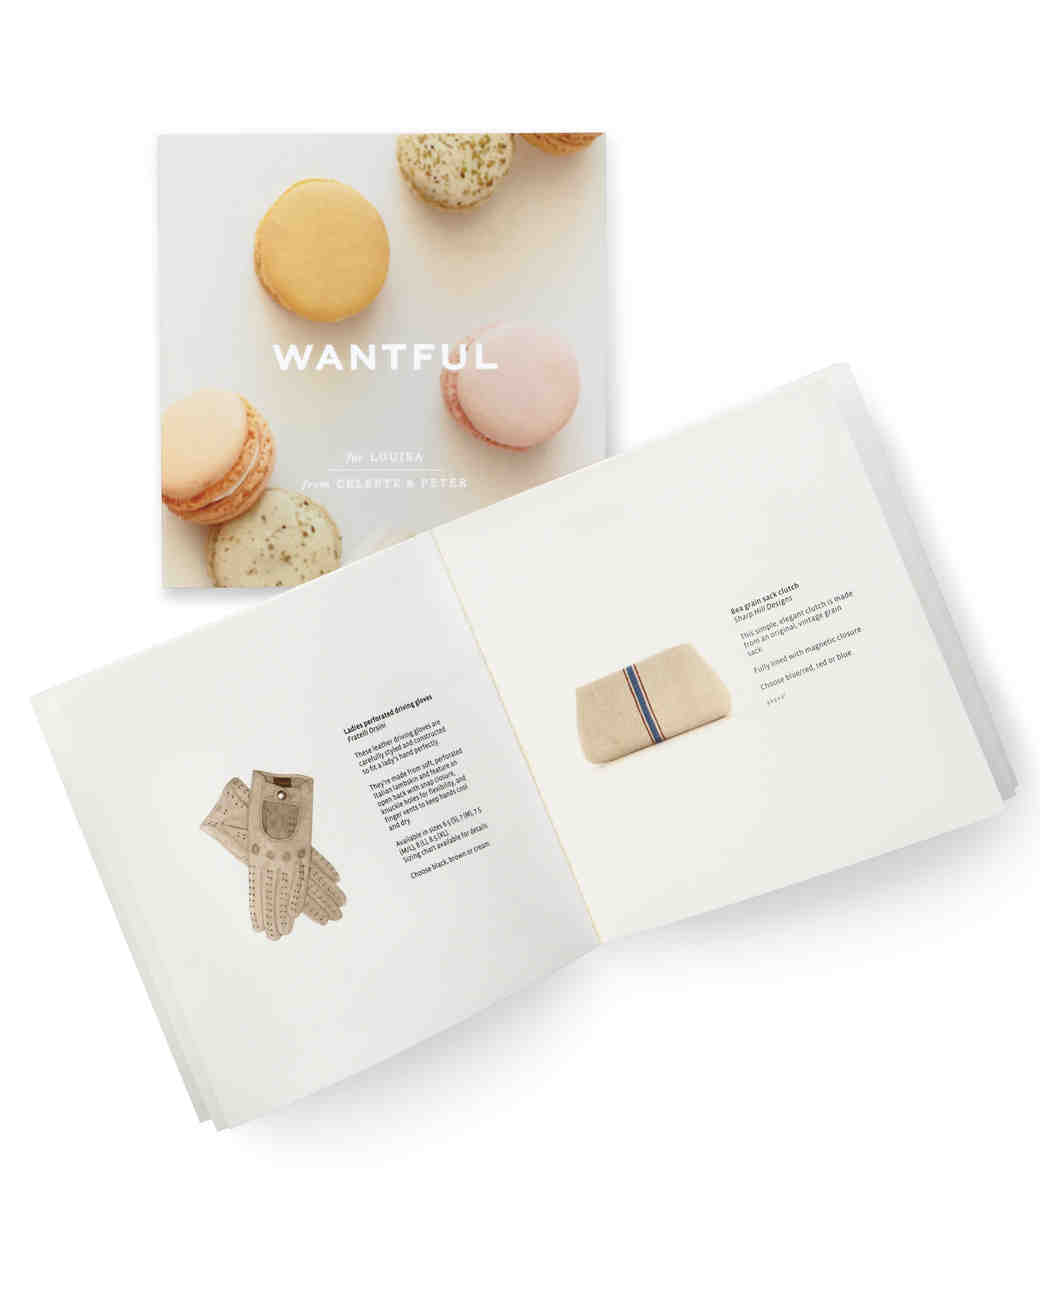 wantful-book-mwd109353.jpg